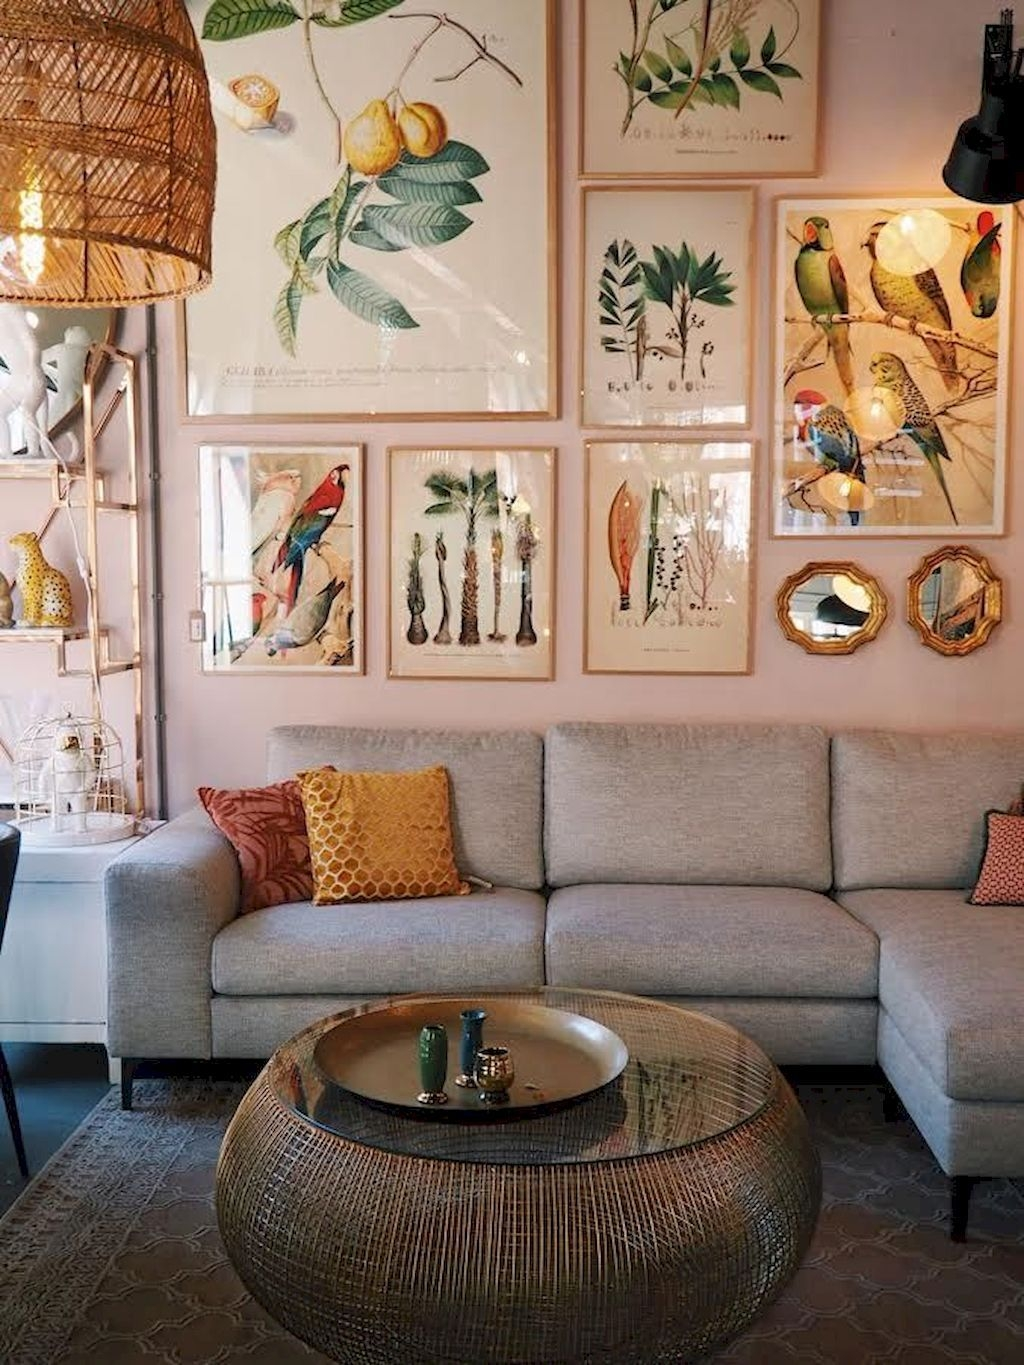 Comely Boho Living Room Decor On A Budget Ideas Spaces Living Room Chairs On Fanciable Accent Wall Ideas for Your Stylish Living Room Part 1 On Boho Living Room Decor On A Budget Ideas Spaces Living Room Chairs